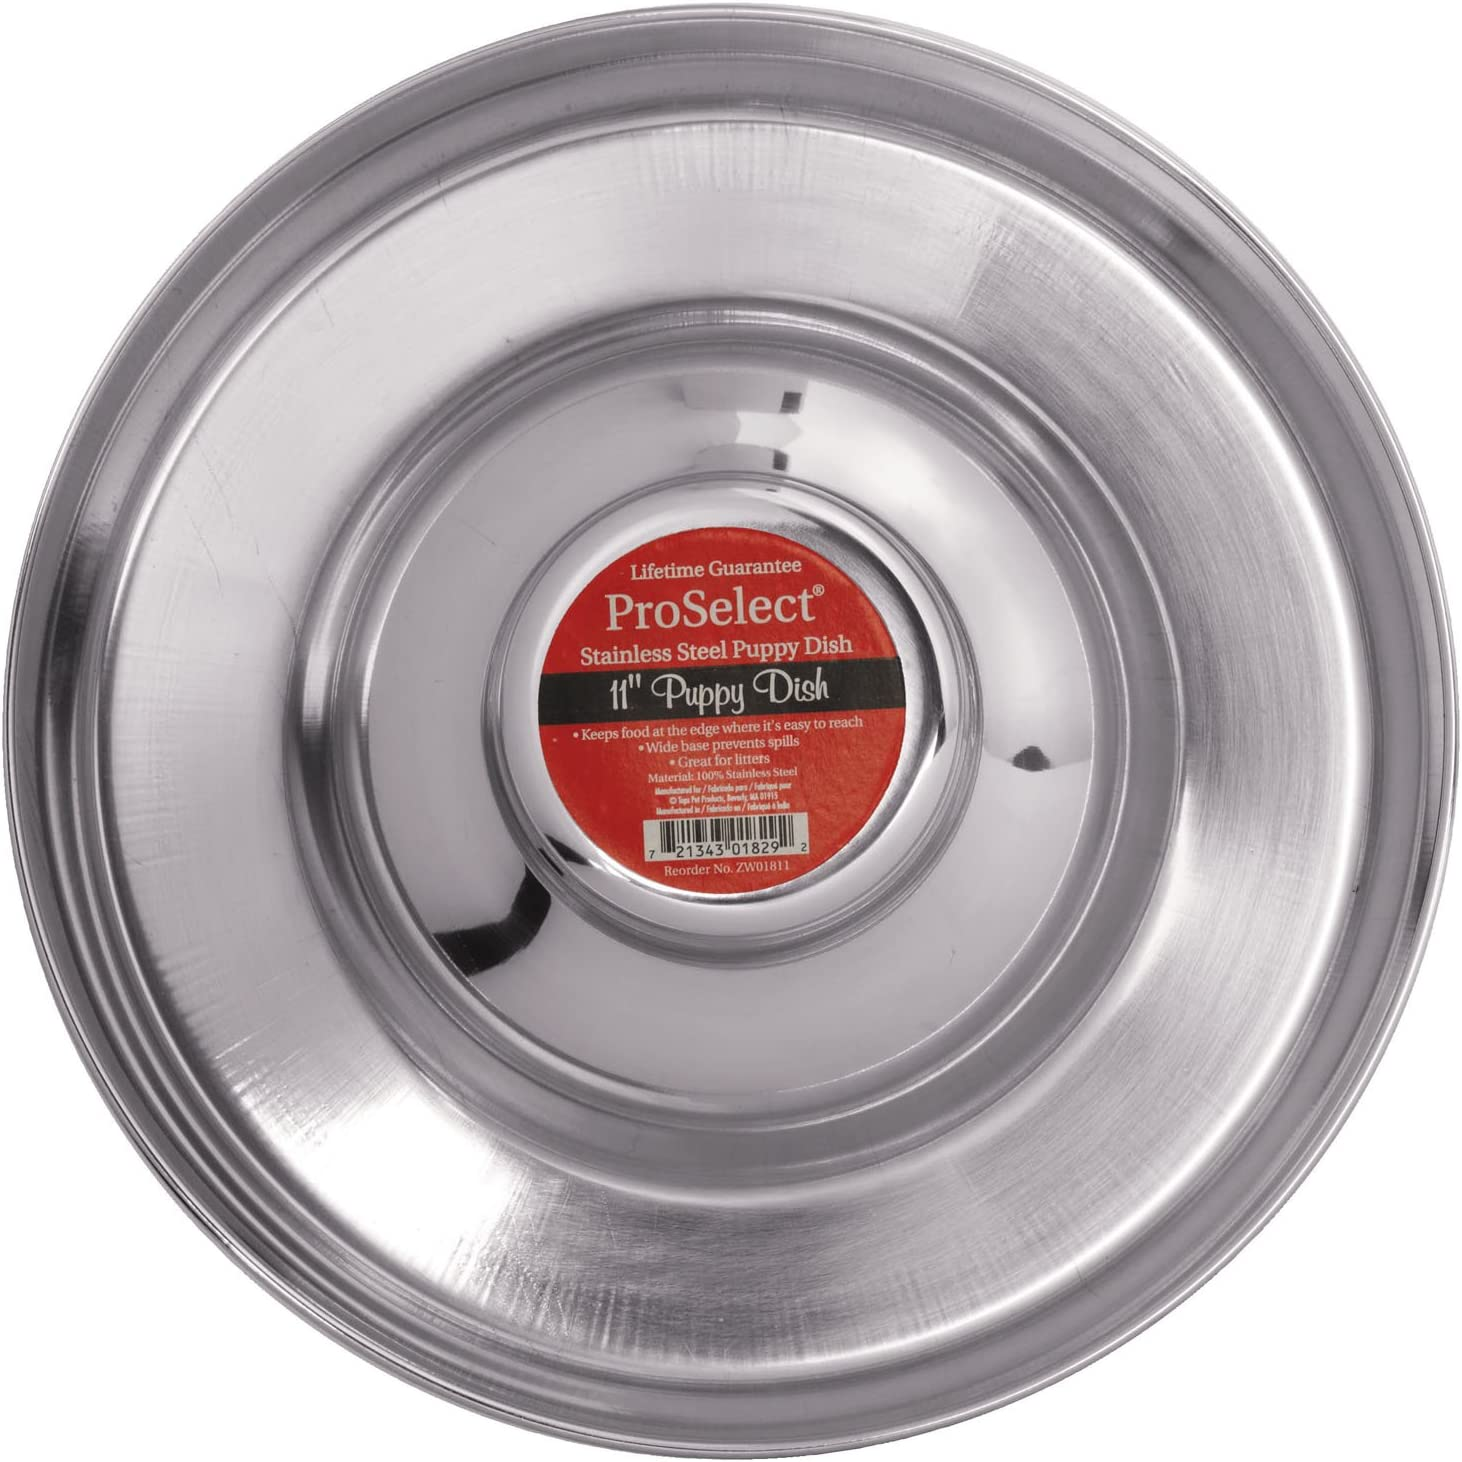 ProSelect Stainless Steel Puppy Dishes — Versatile Dishes for Multiple Puppies, 11